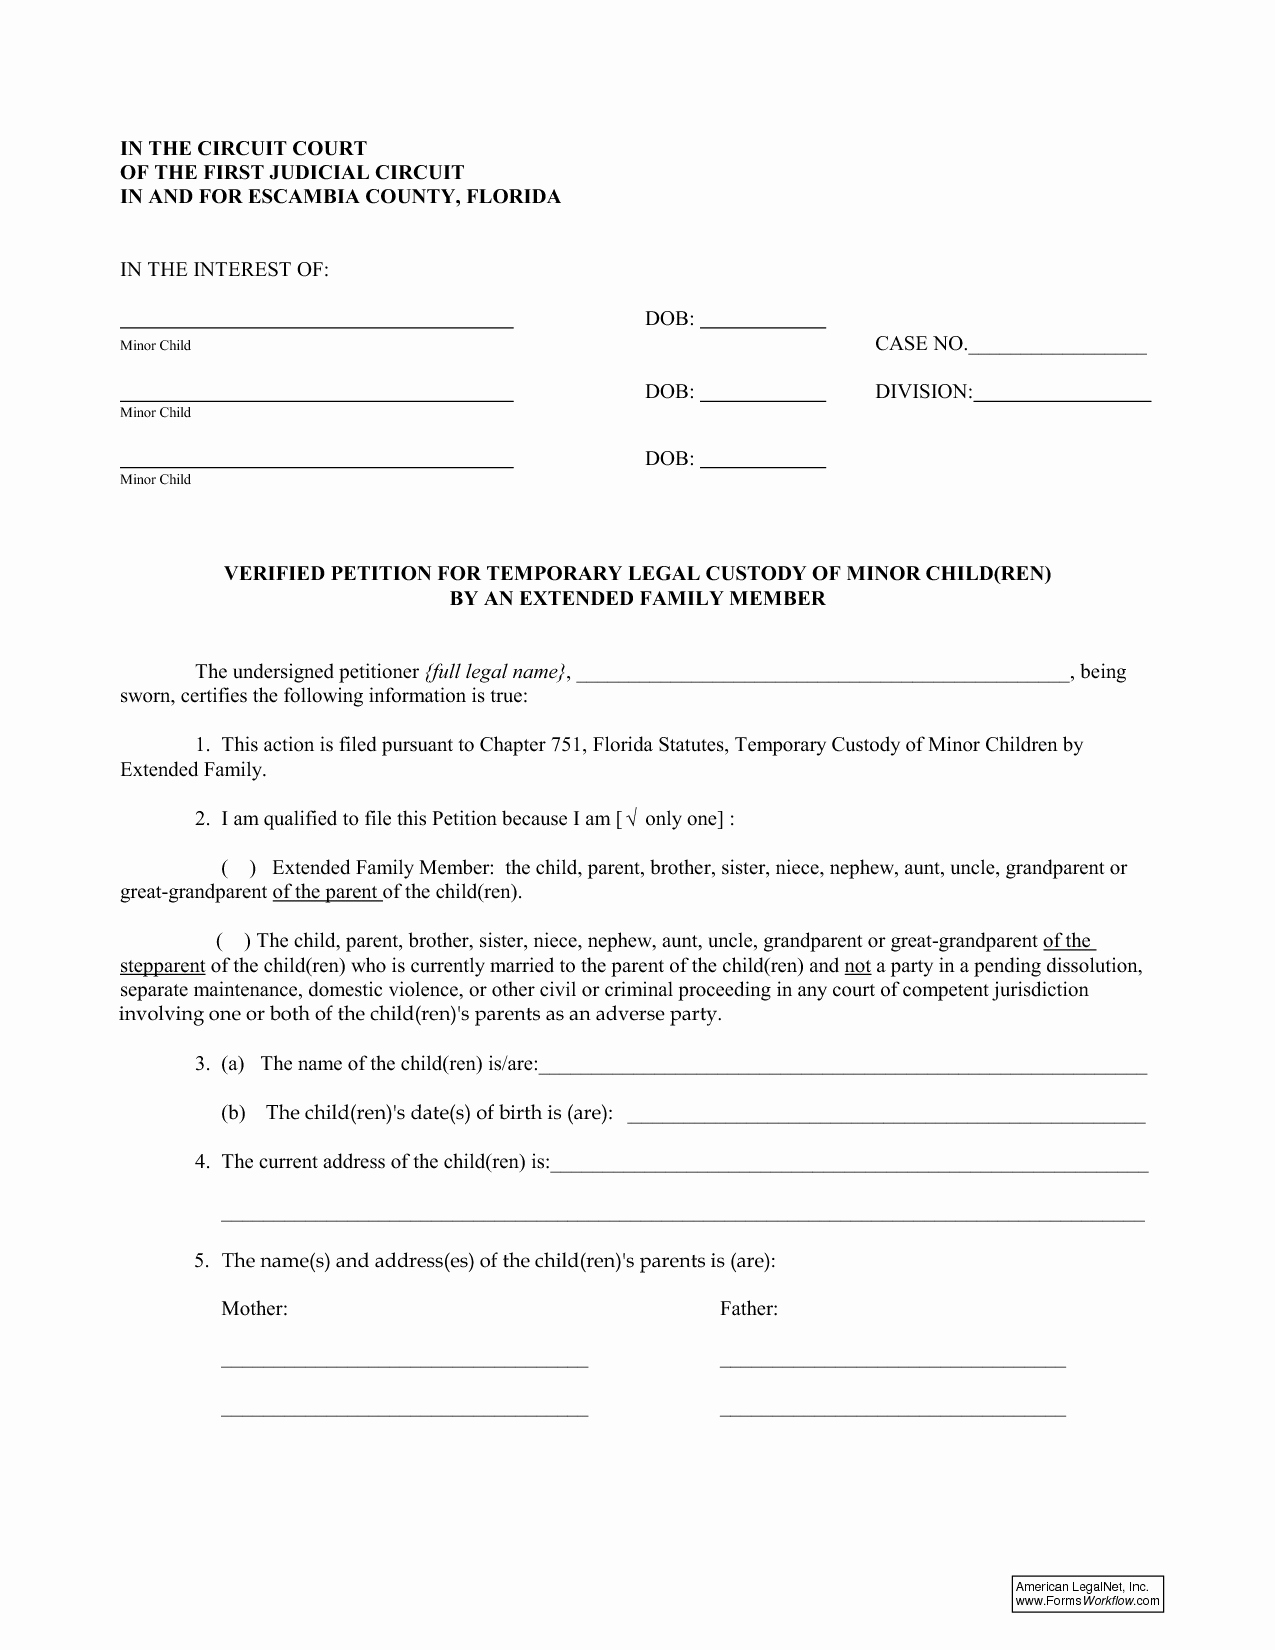 Temporary Guardianship Agreement form Best Of Temporary Child Custody Agreement form Excellent Best S